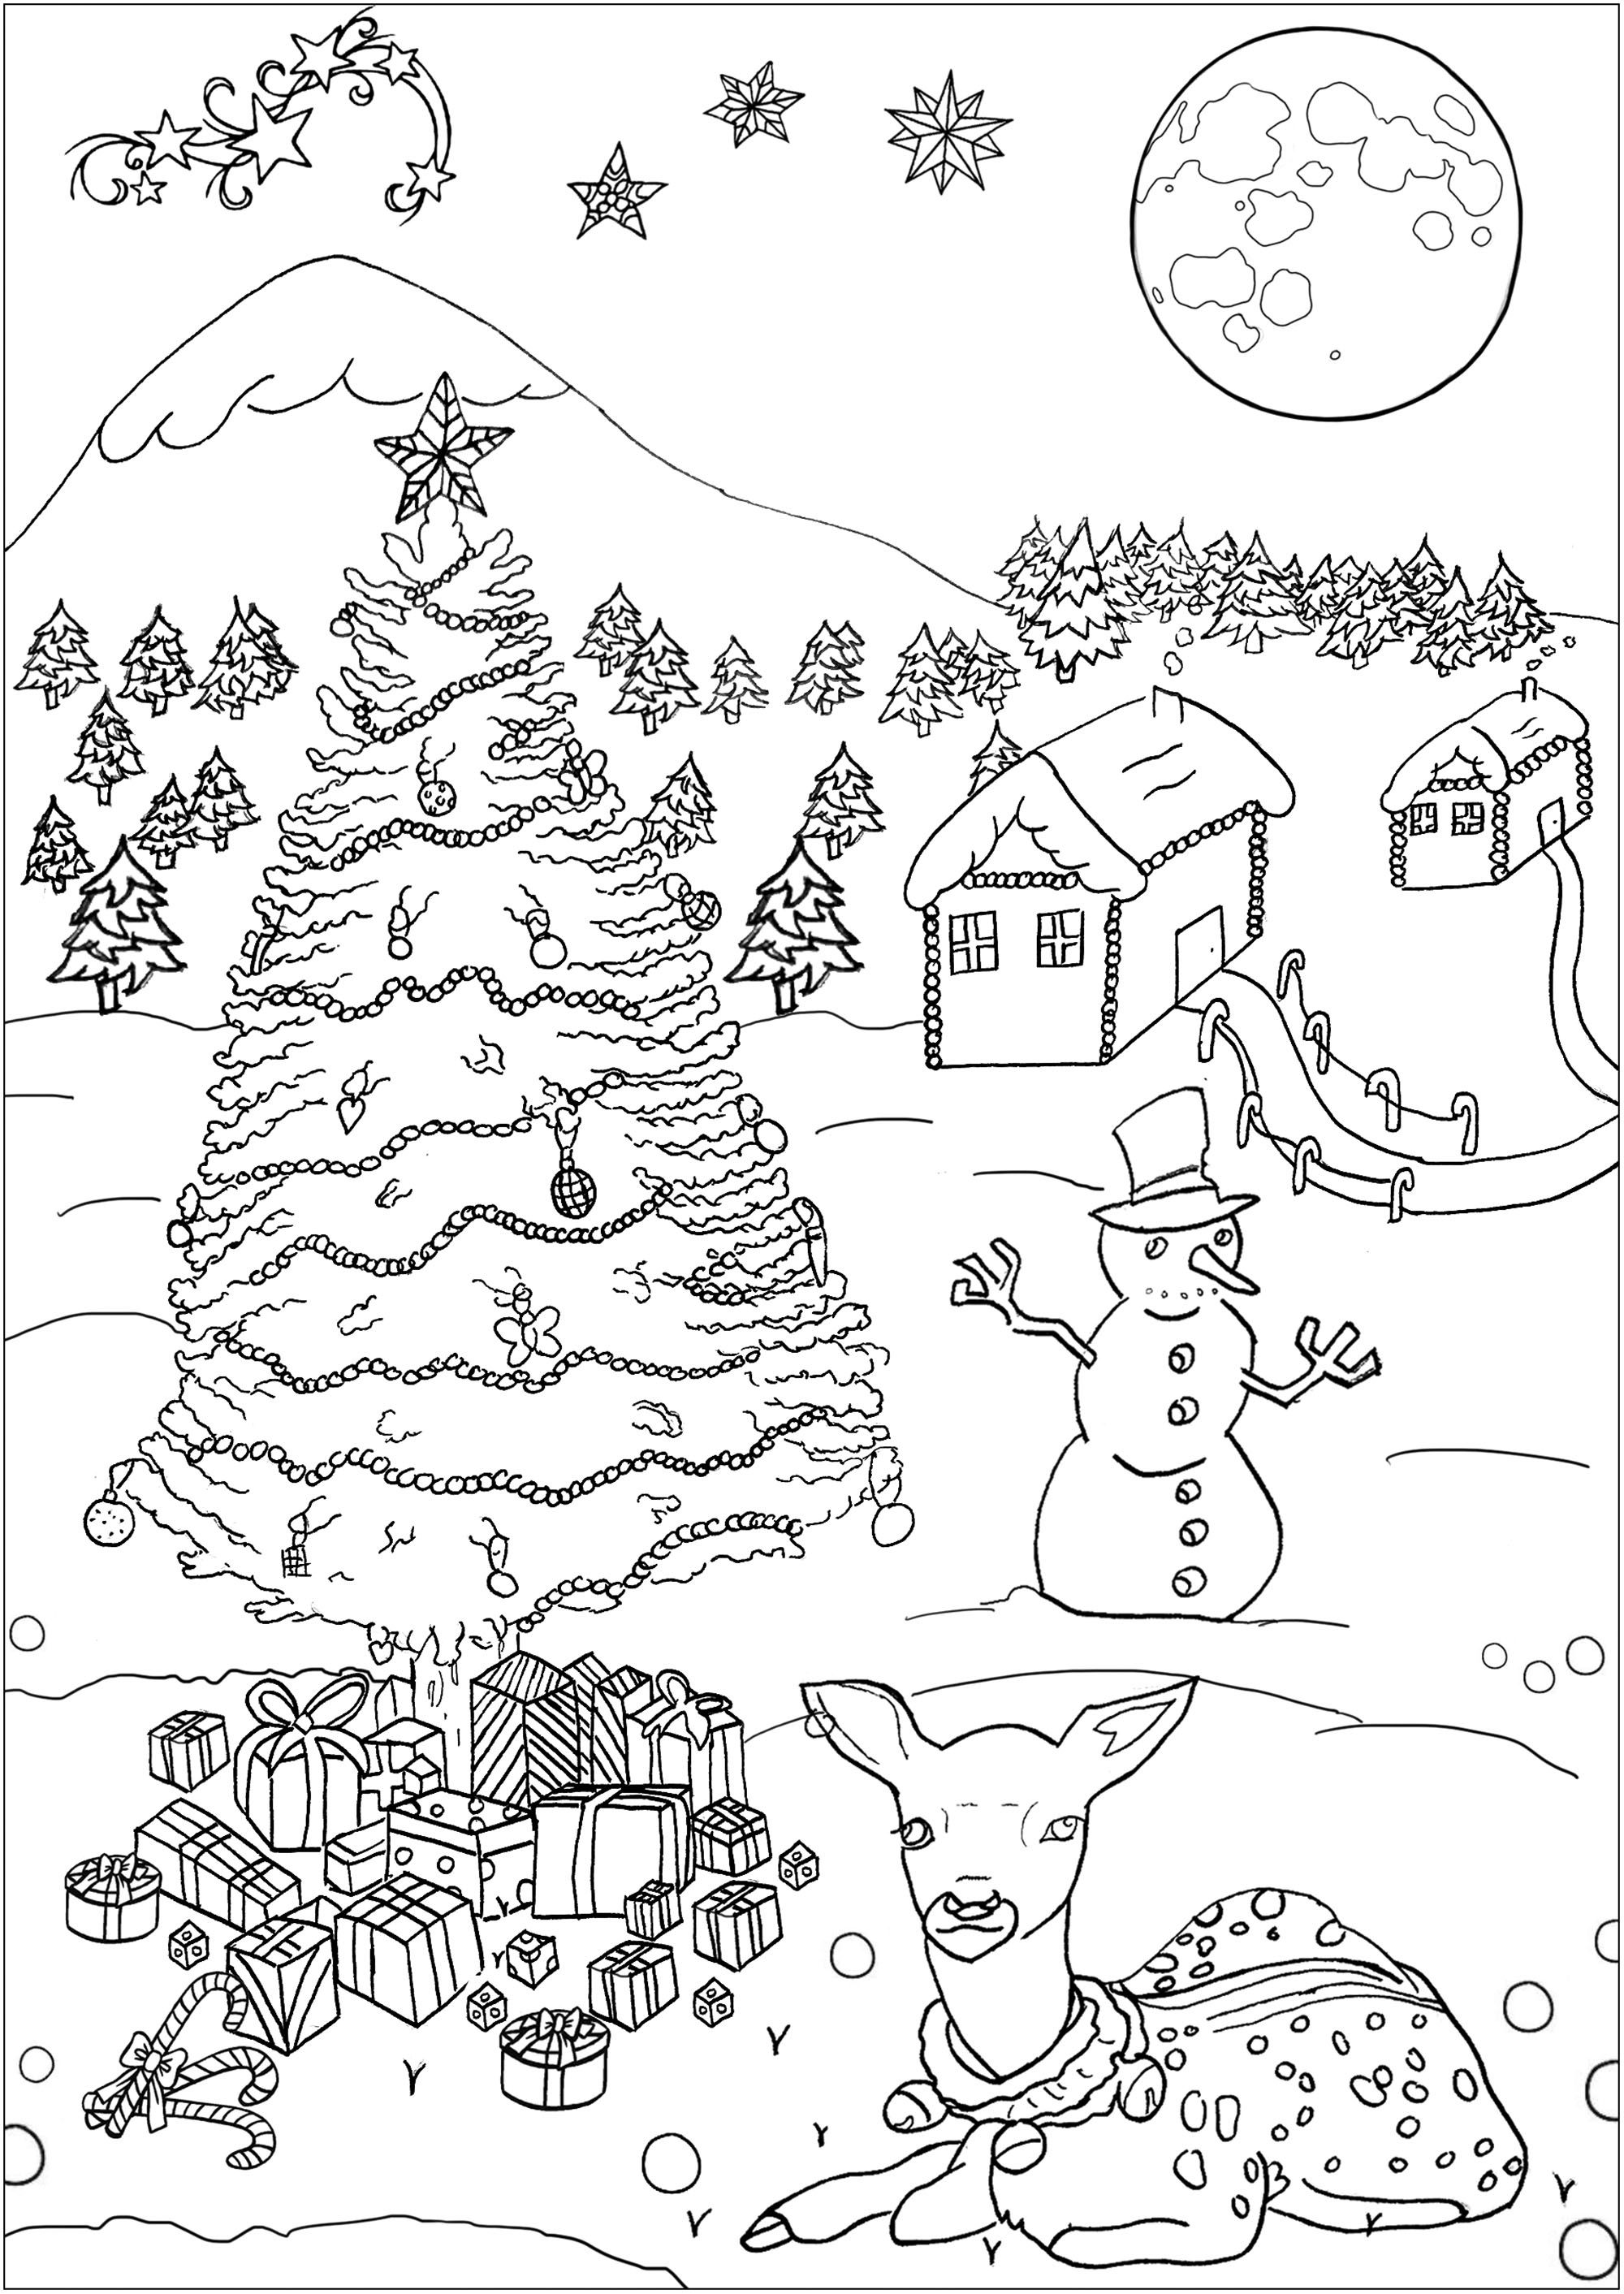 Christmas Landscape Christmas Coloring Page With A Pretty Lodge A Tree A S Christmas Tree Coloring Page Coloring Pages Winter Coloring Pages Inspirational